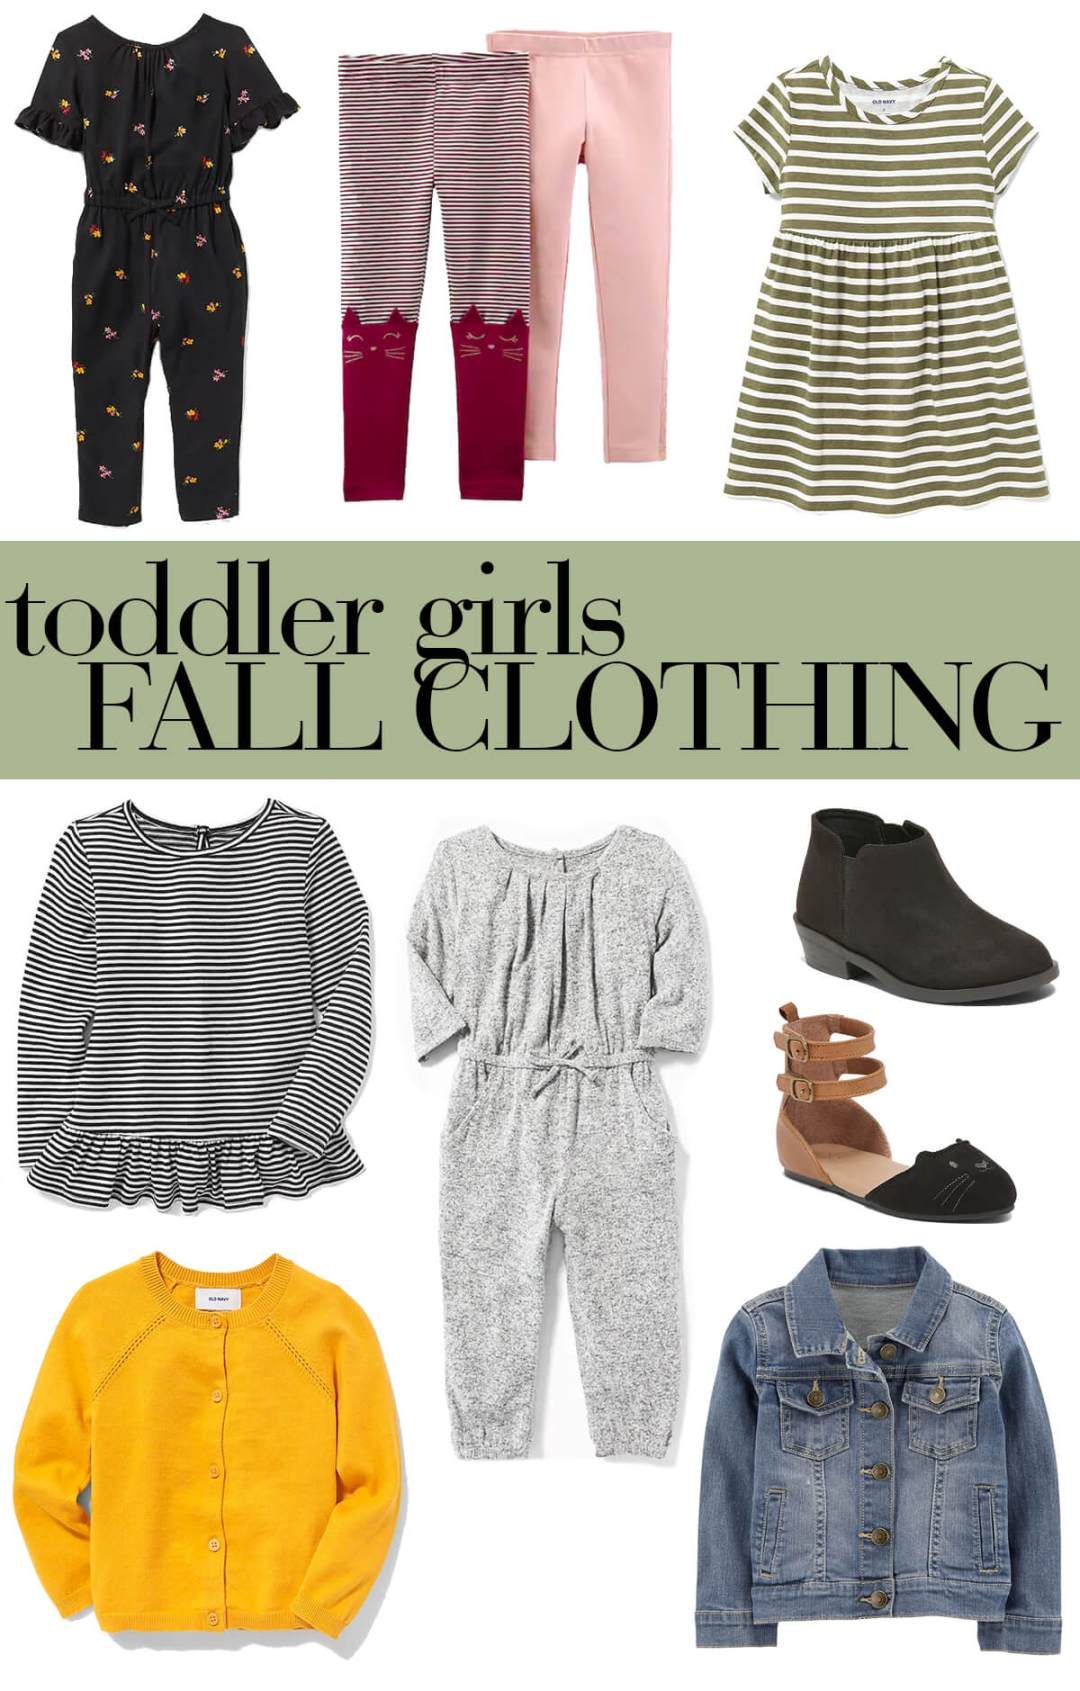 toddler girls fall clothing